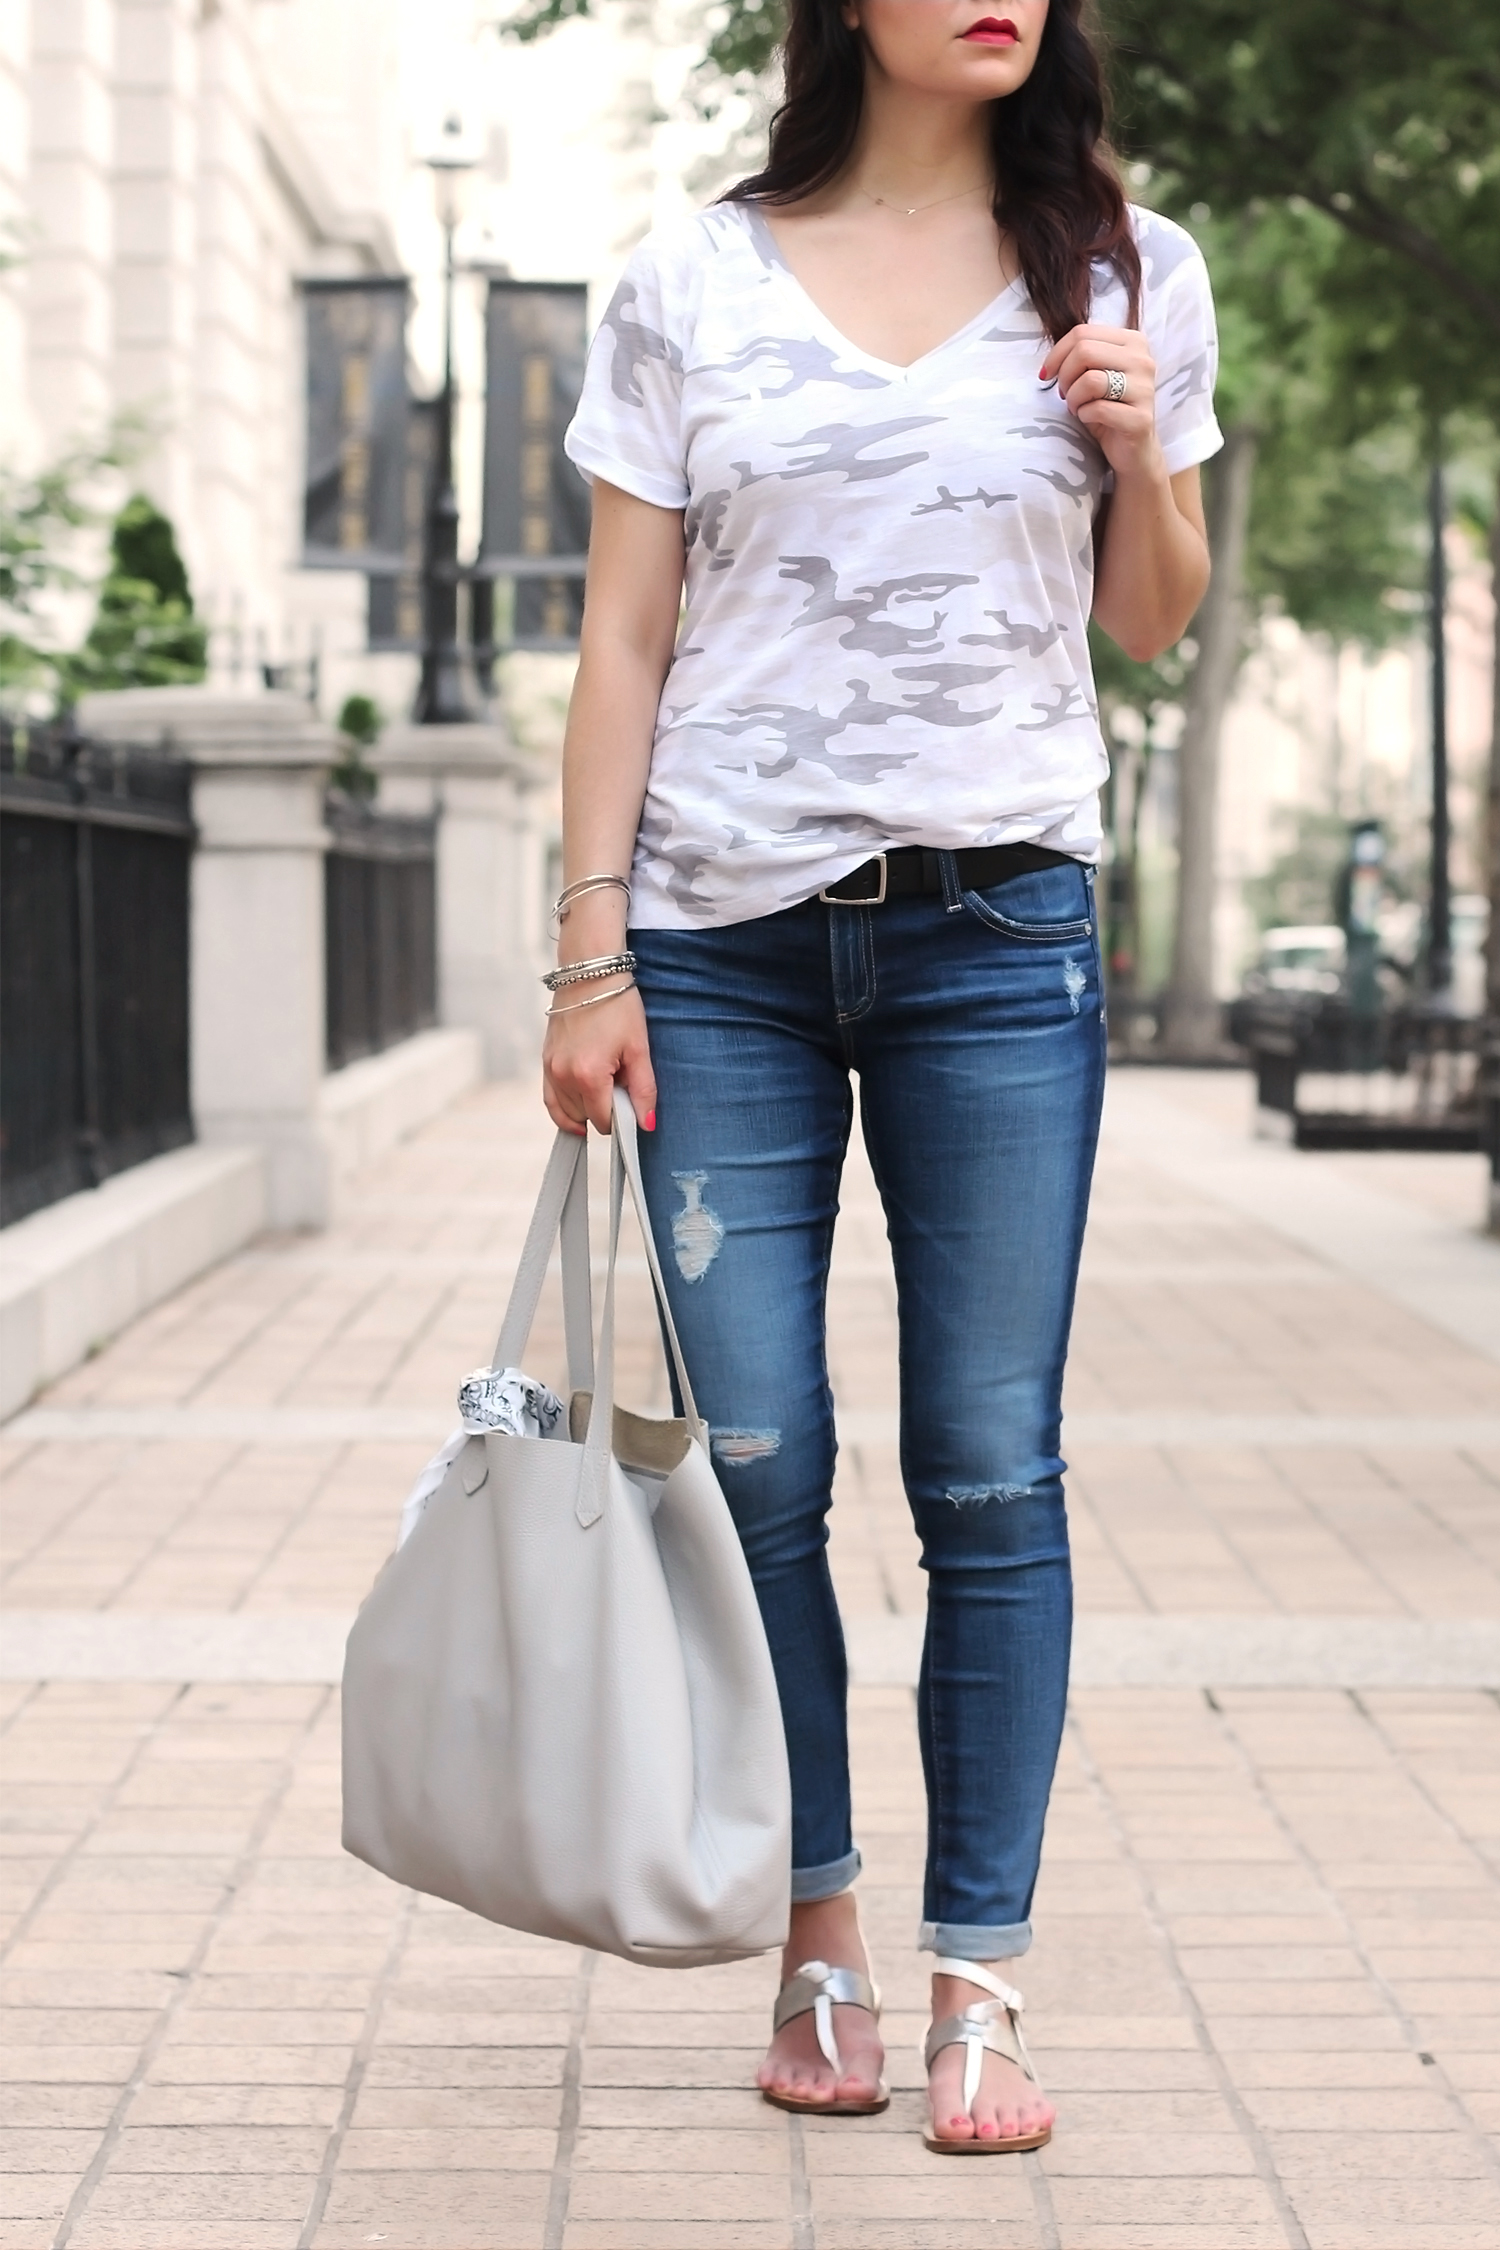 Distressed jeans and sandals